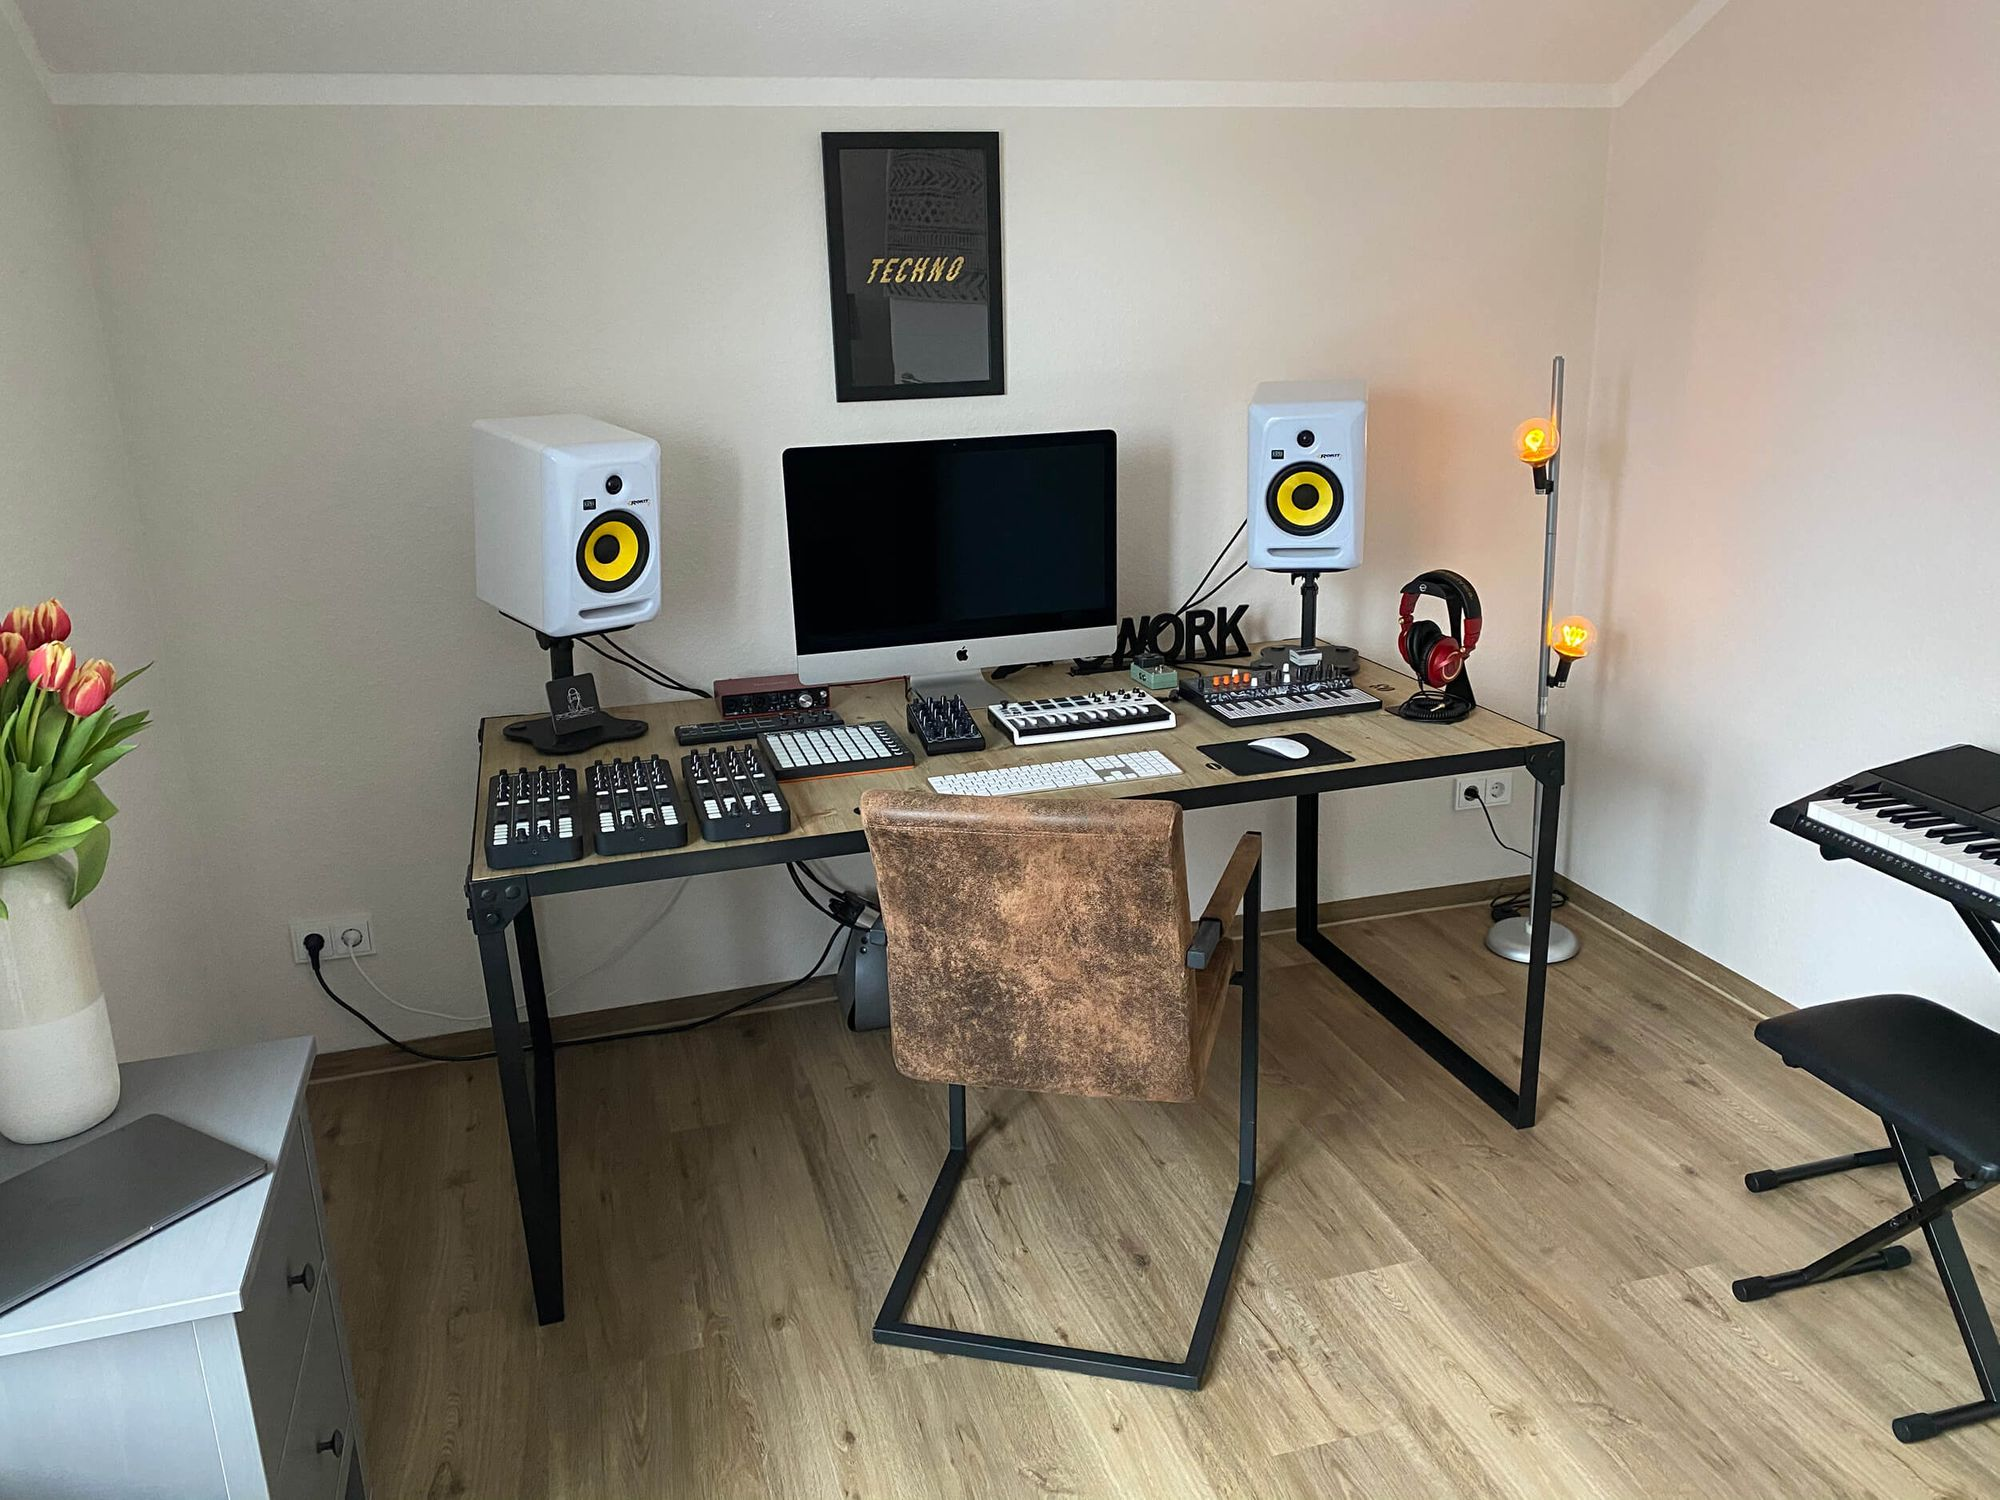 Having fallen in love with techno music while living in Frankfurt am Main, Nadine now owns her own home recording studio in Kiel